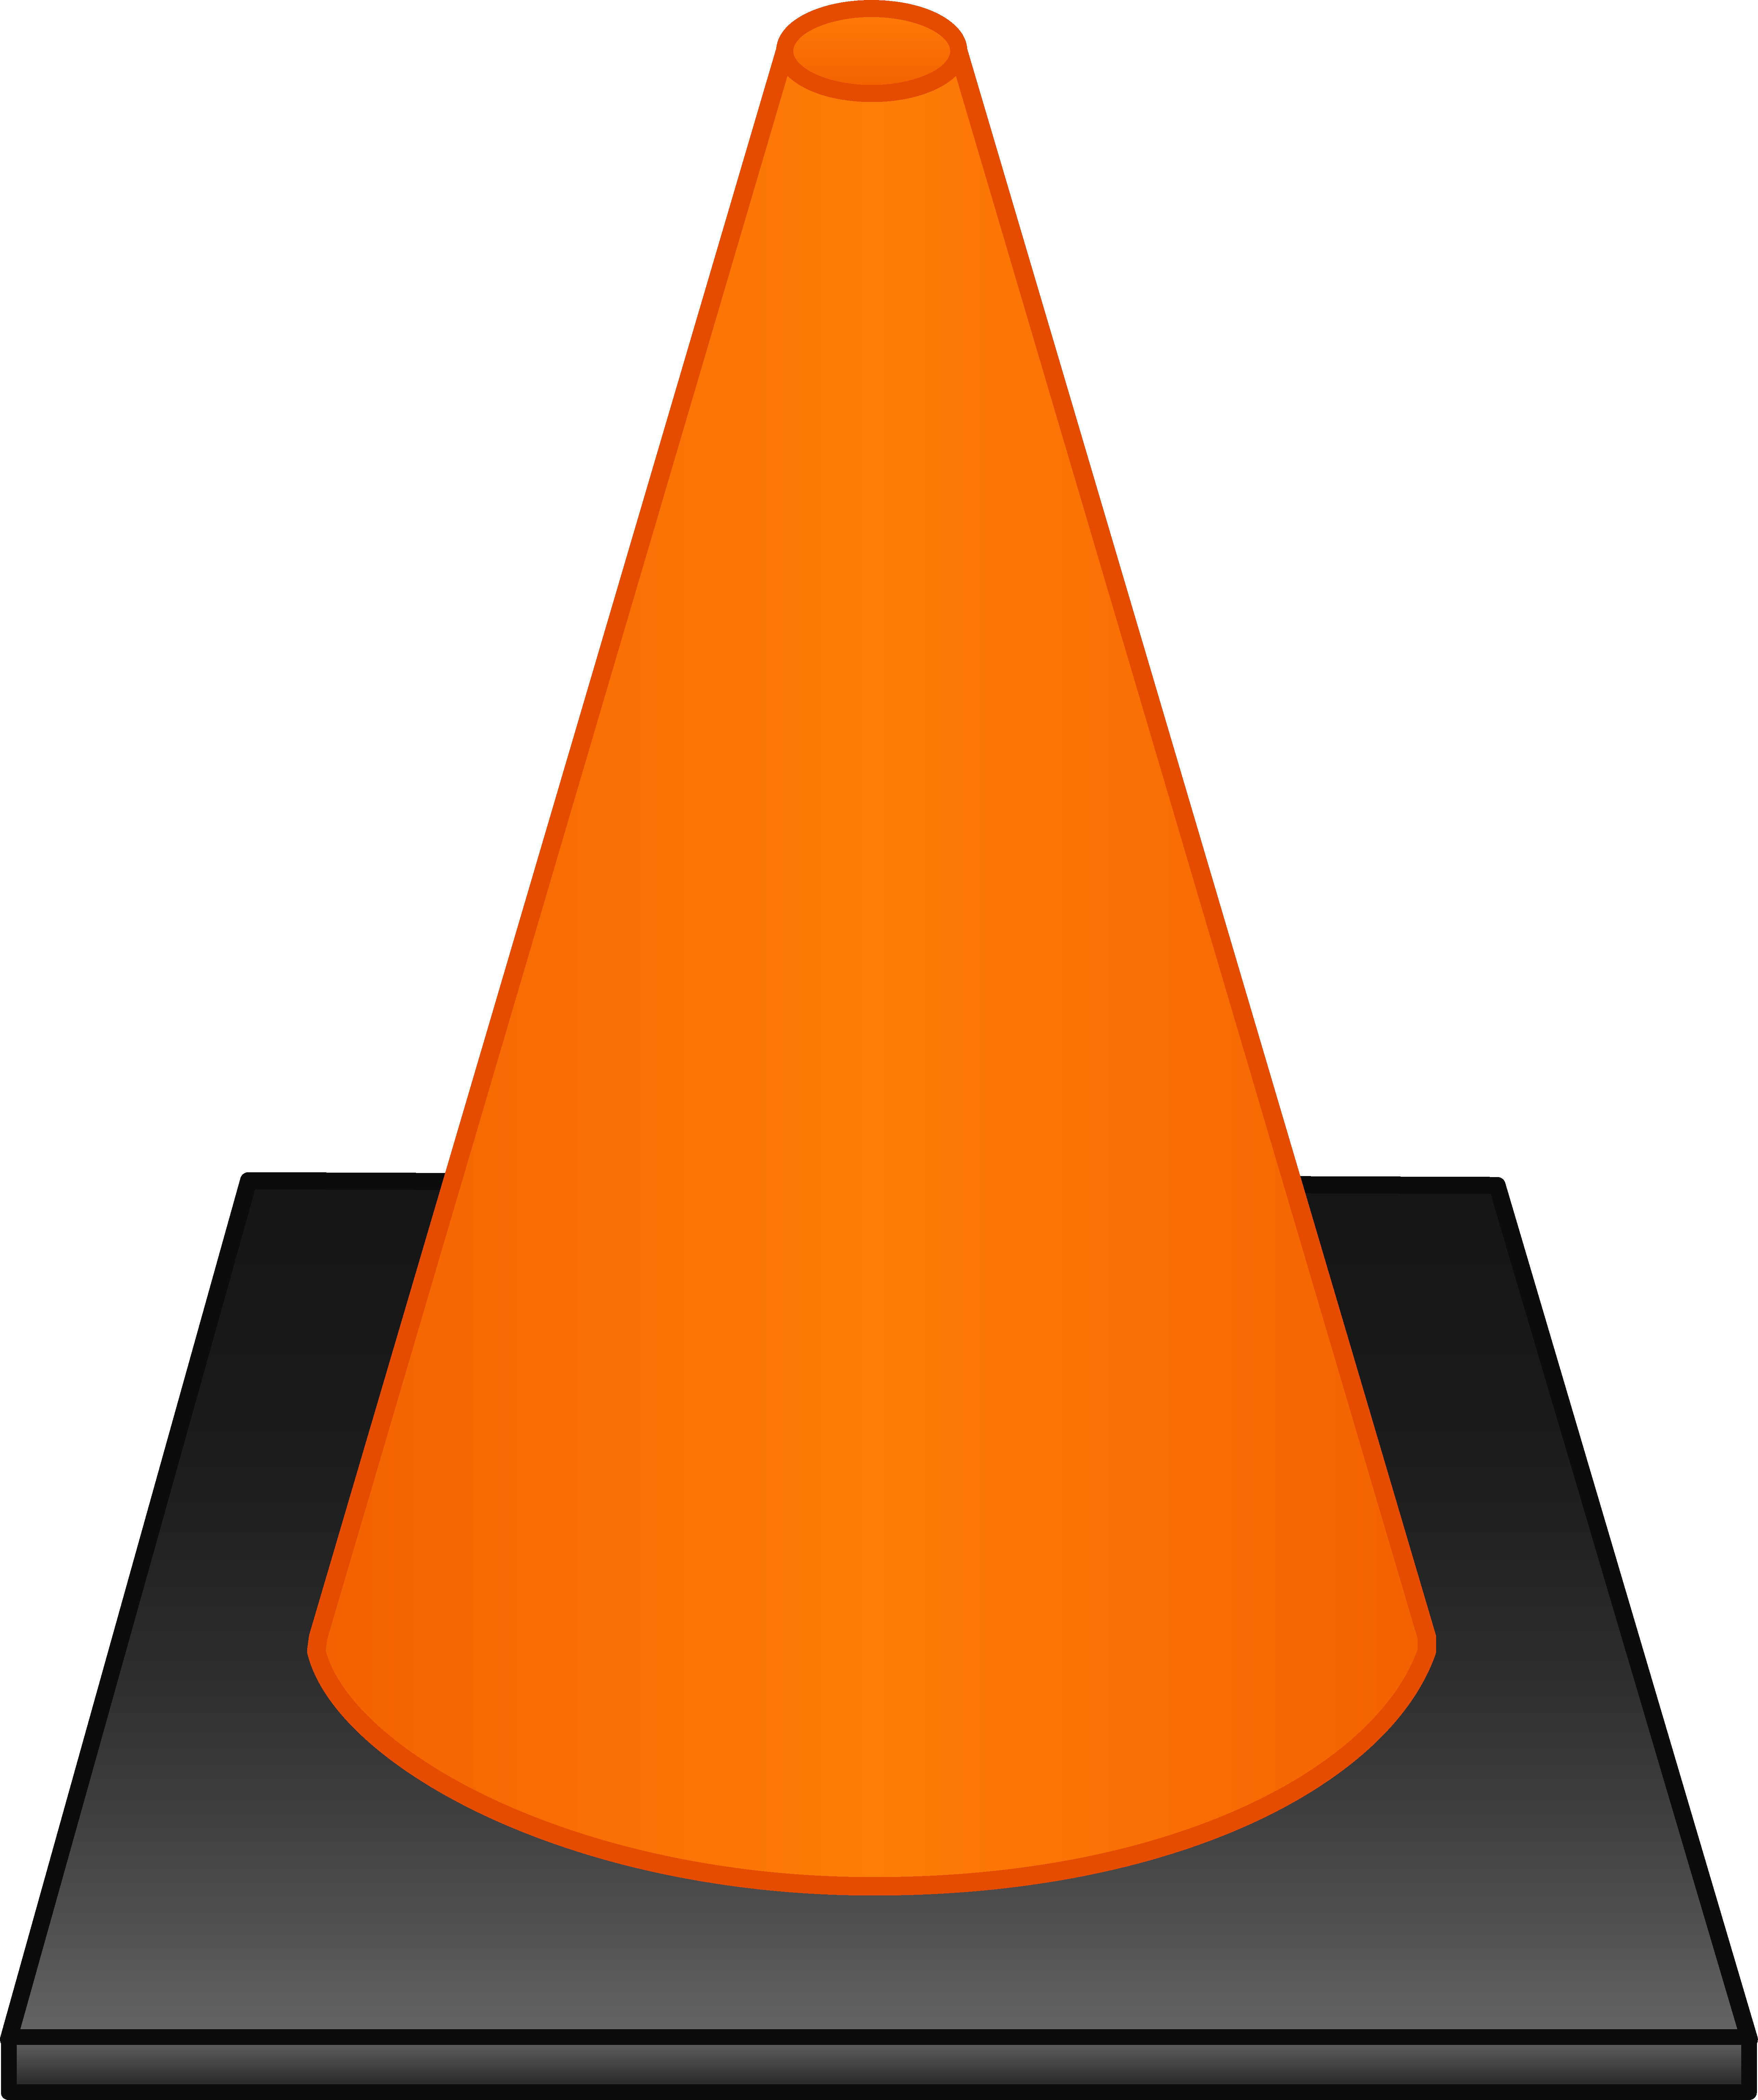 Orange house clipart png freeuse Orange Traffic Cone - Free Clip Art png freeuse